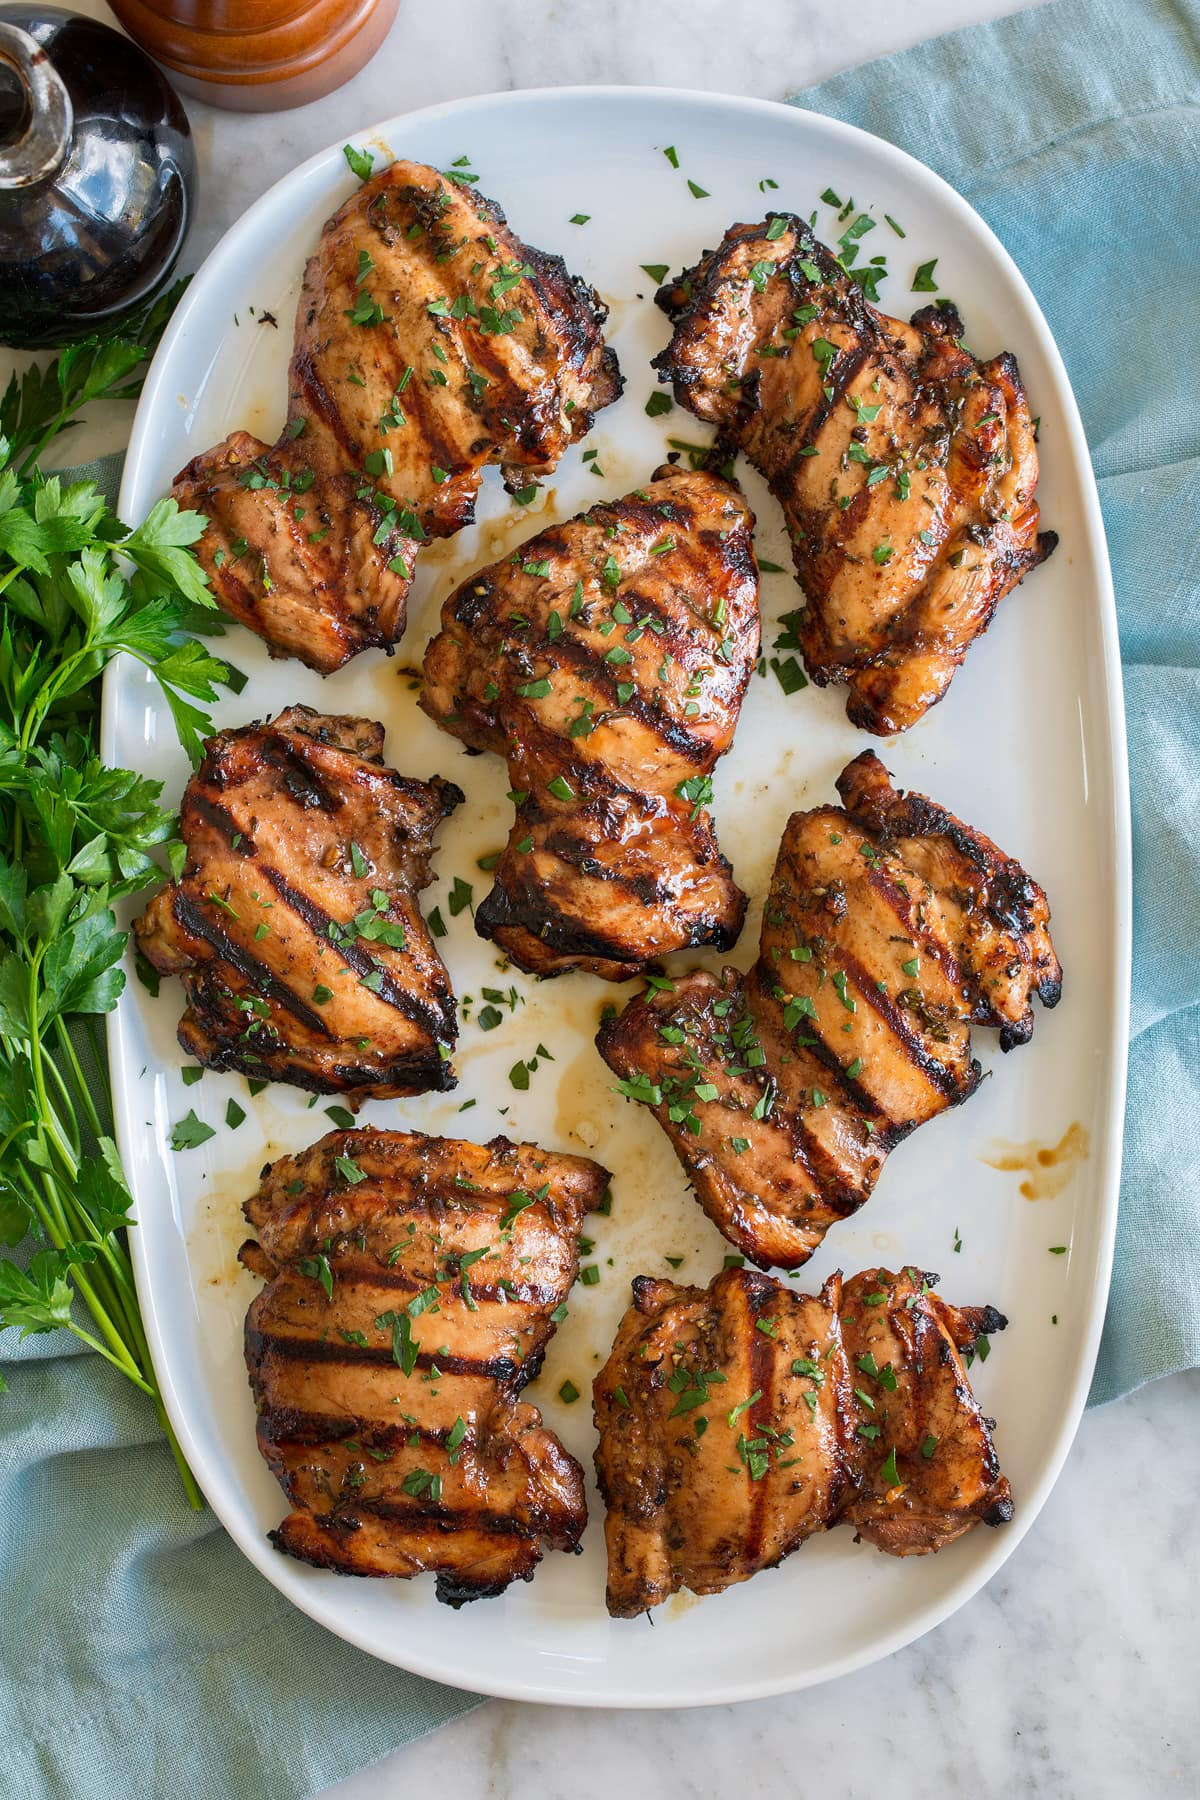 Balsamic chicken thighs shown on an oval white platter from overhead.